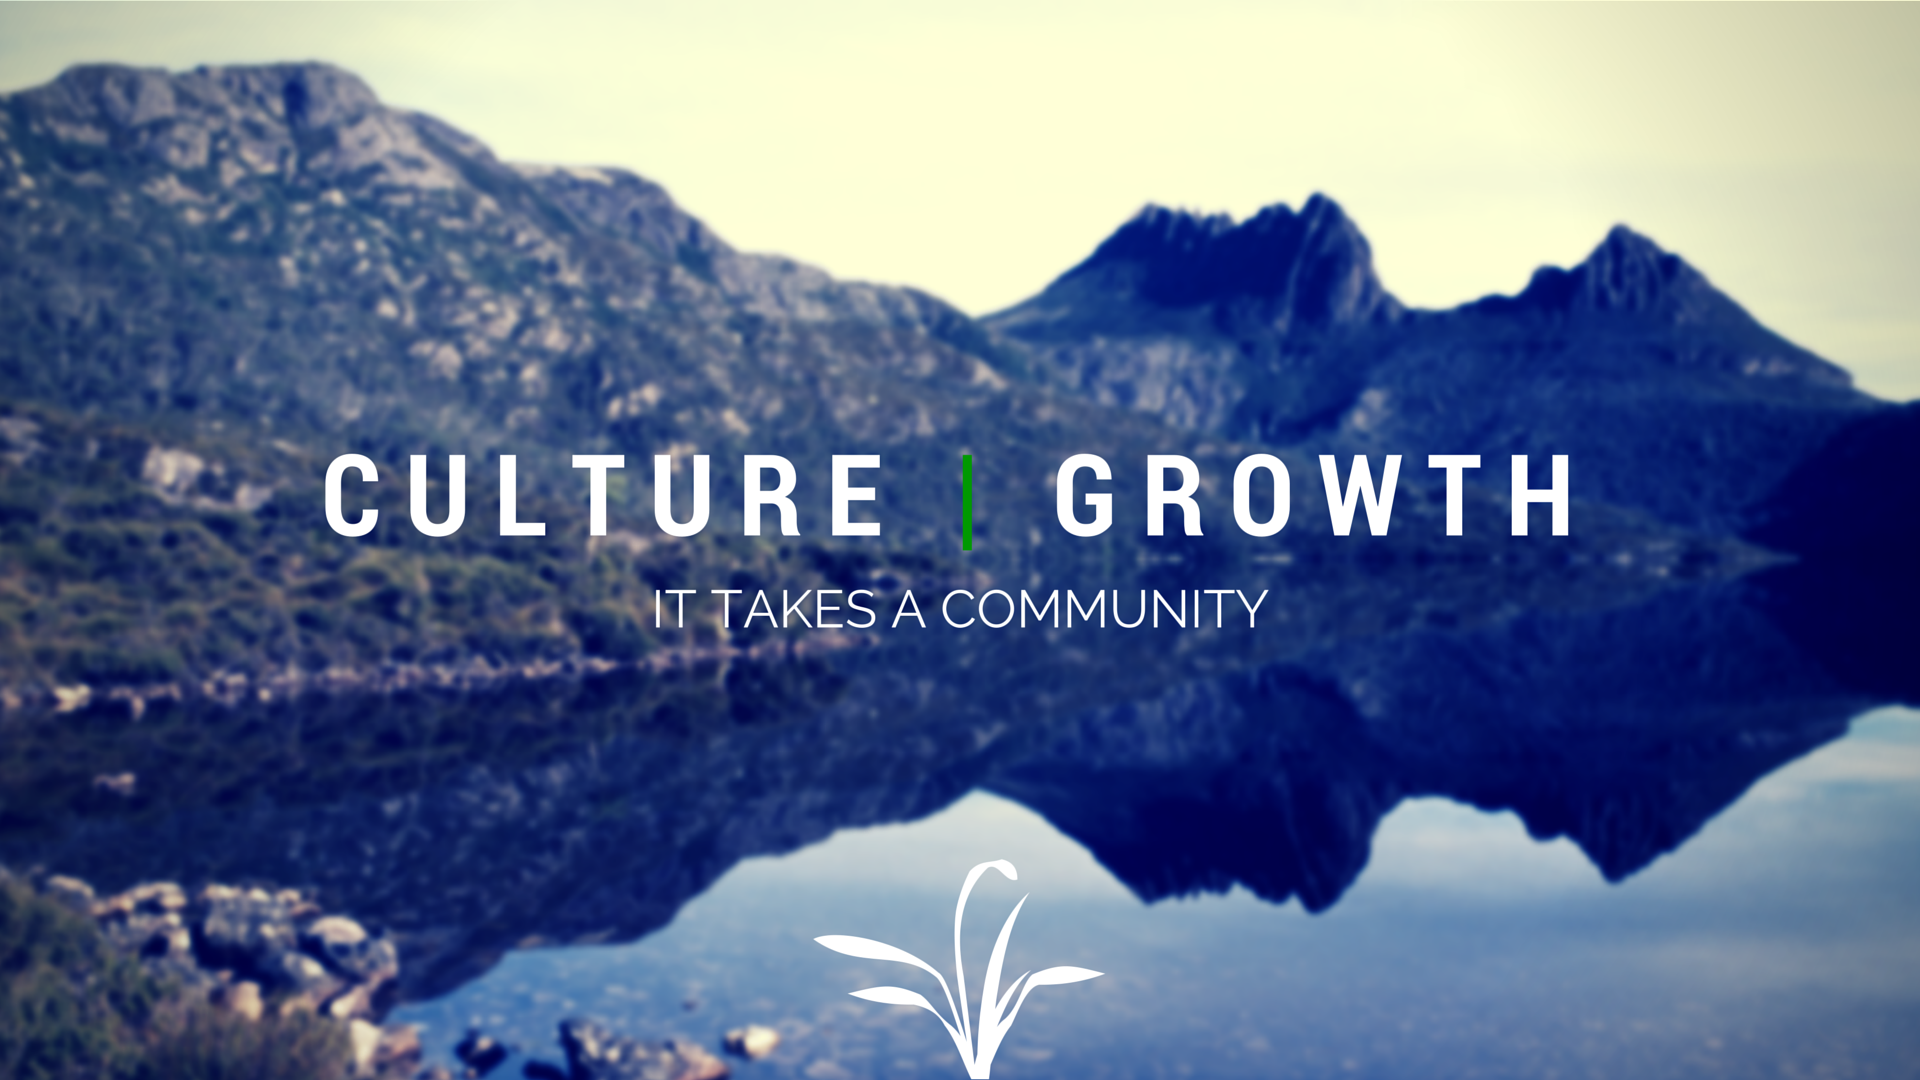 CULTURE _ GROWTH_Revolution_Recovery